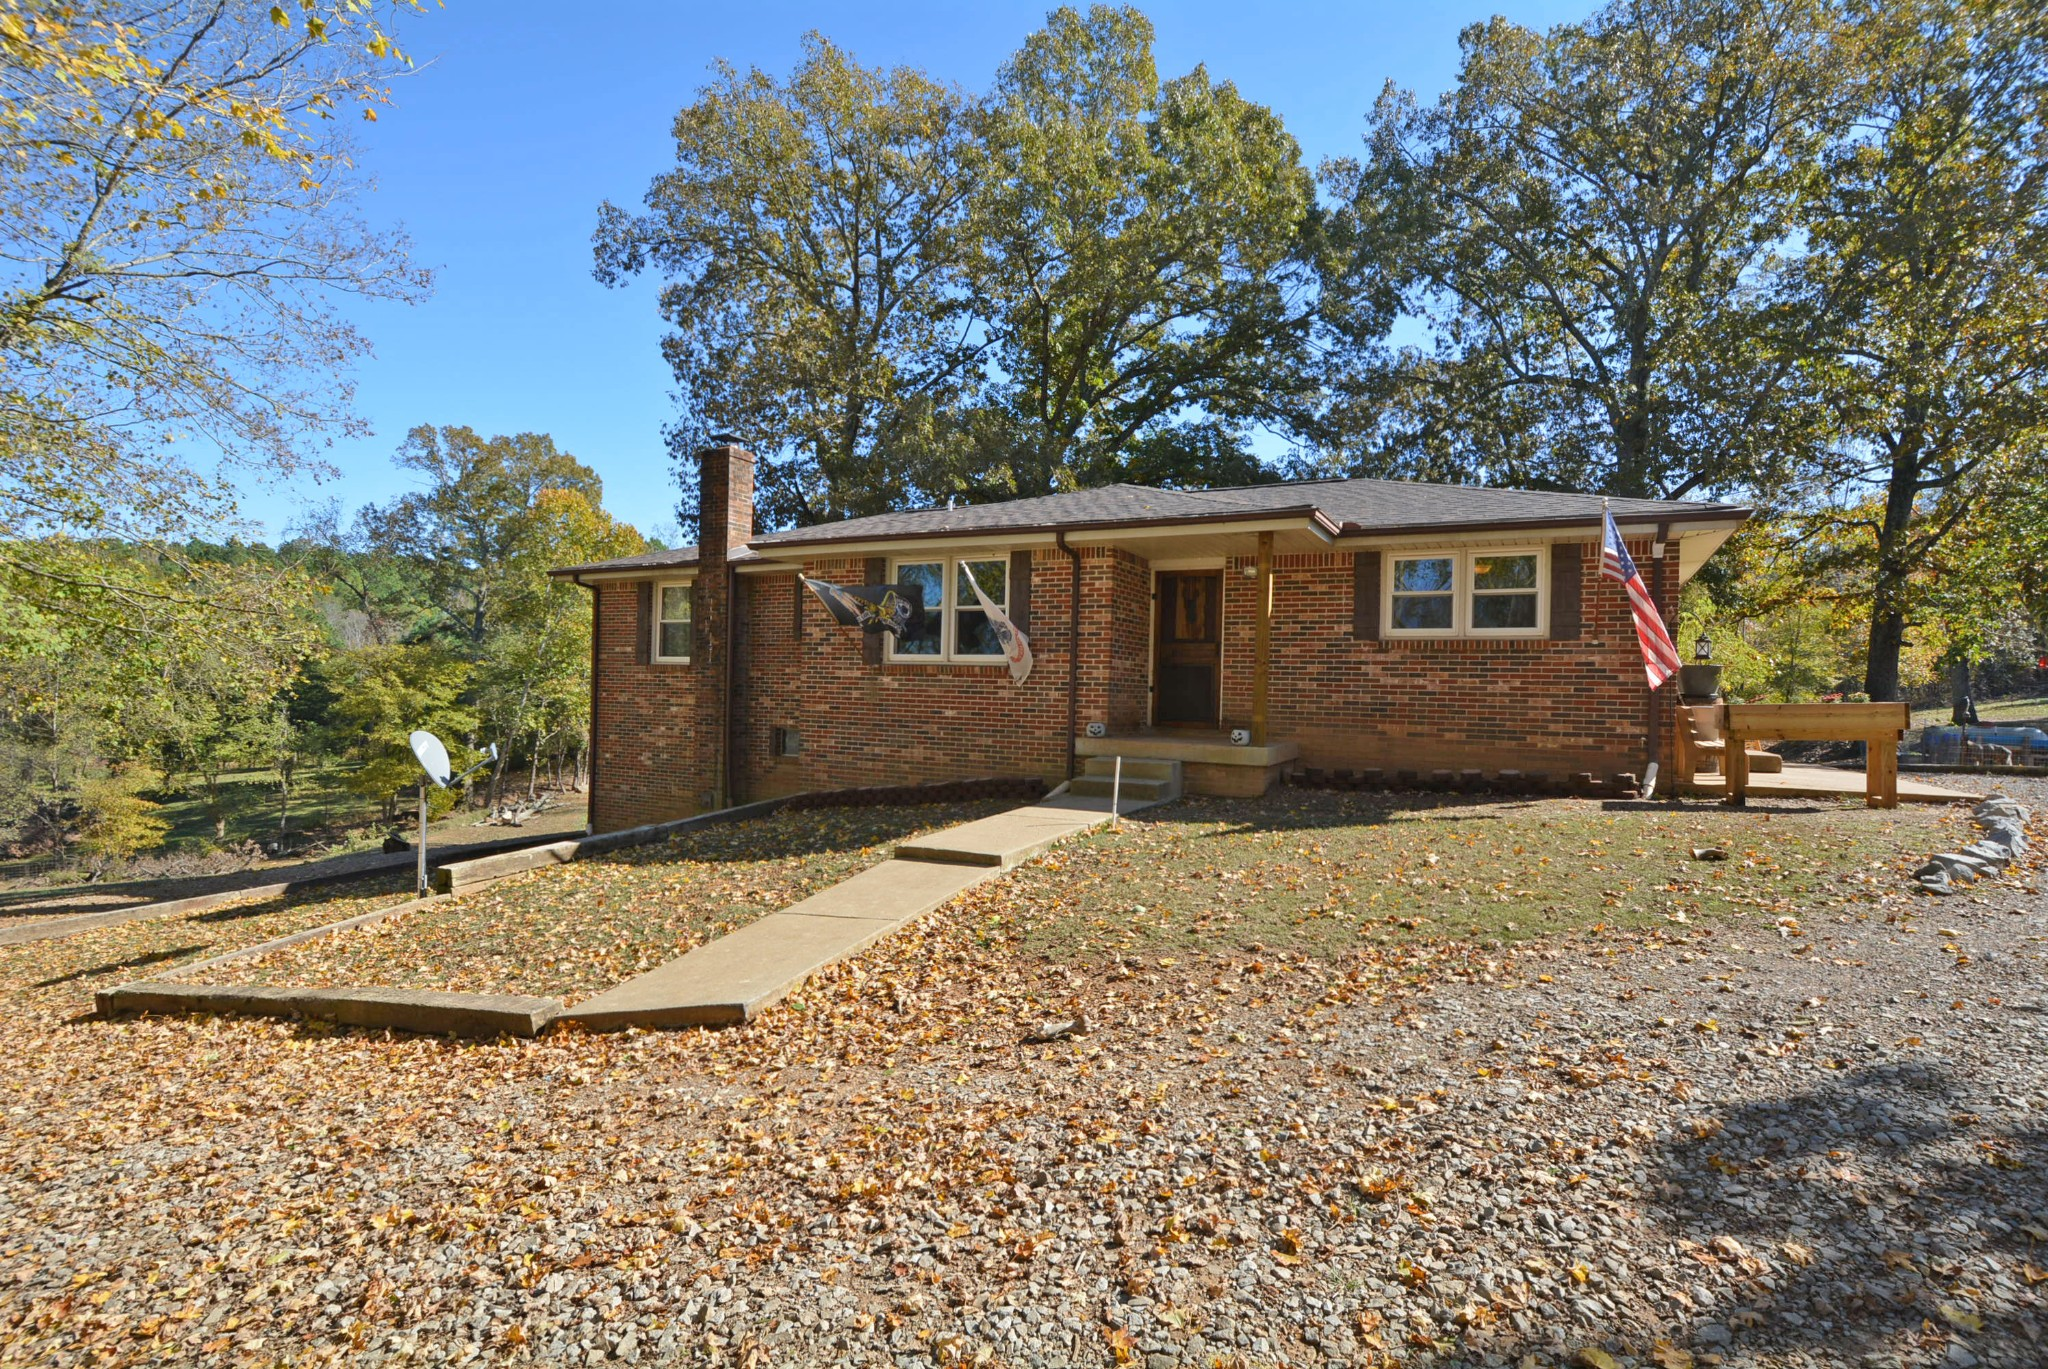 1854 Palmyra Rd, Palmyra, TN 37142 - Palmyra, TN real estate listing